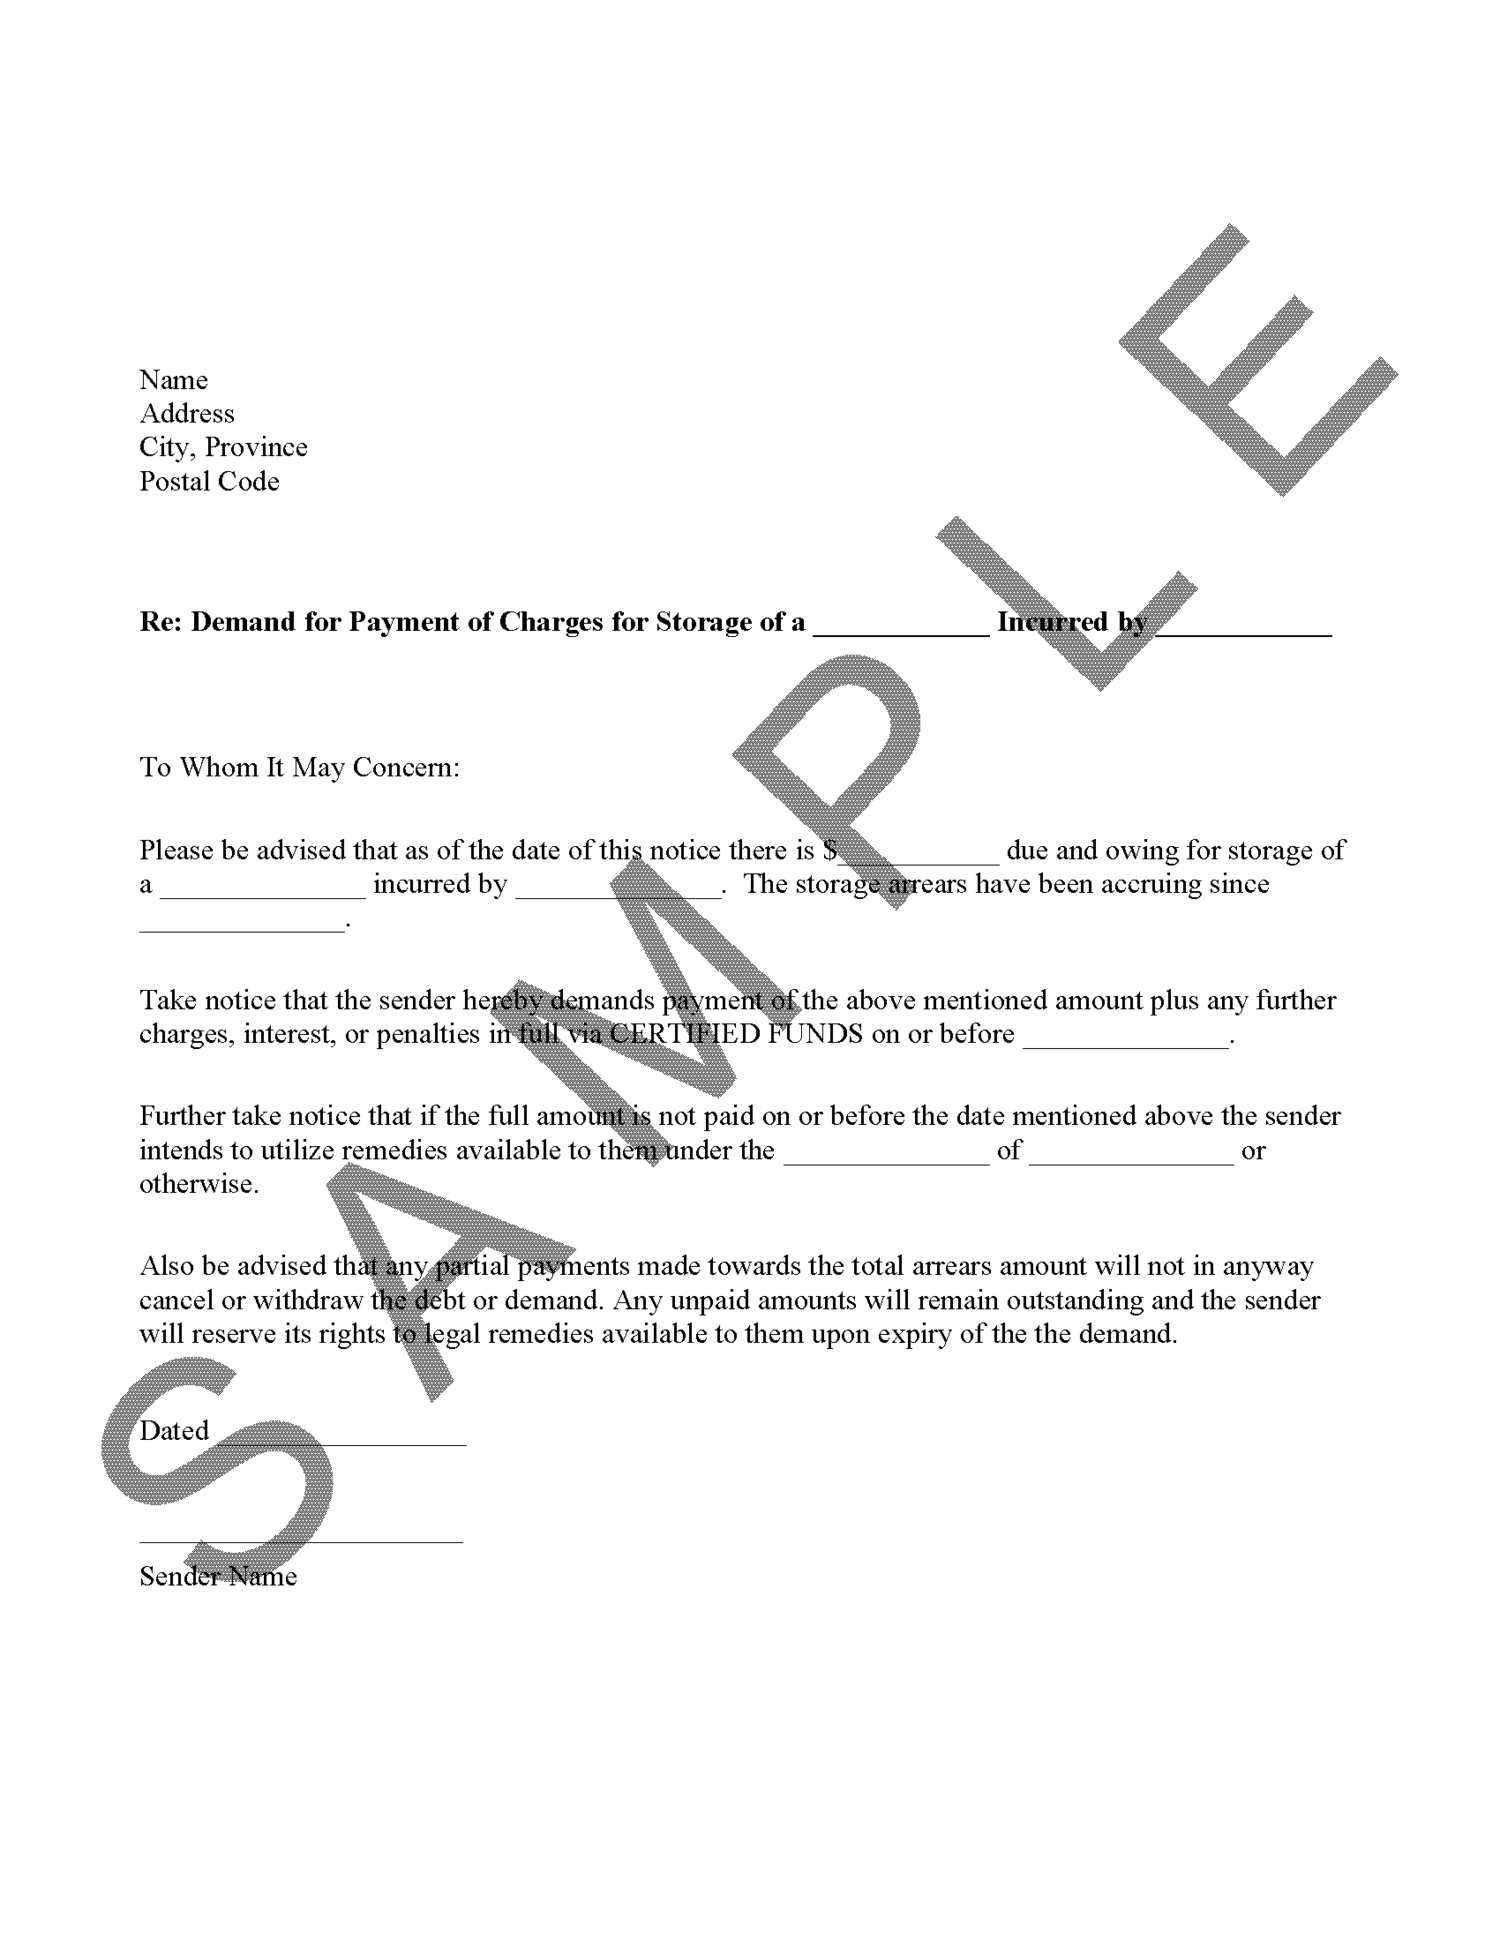 Demand Letter Format Sample from static1.squarespace.com